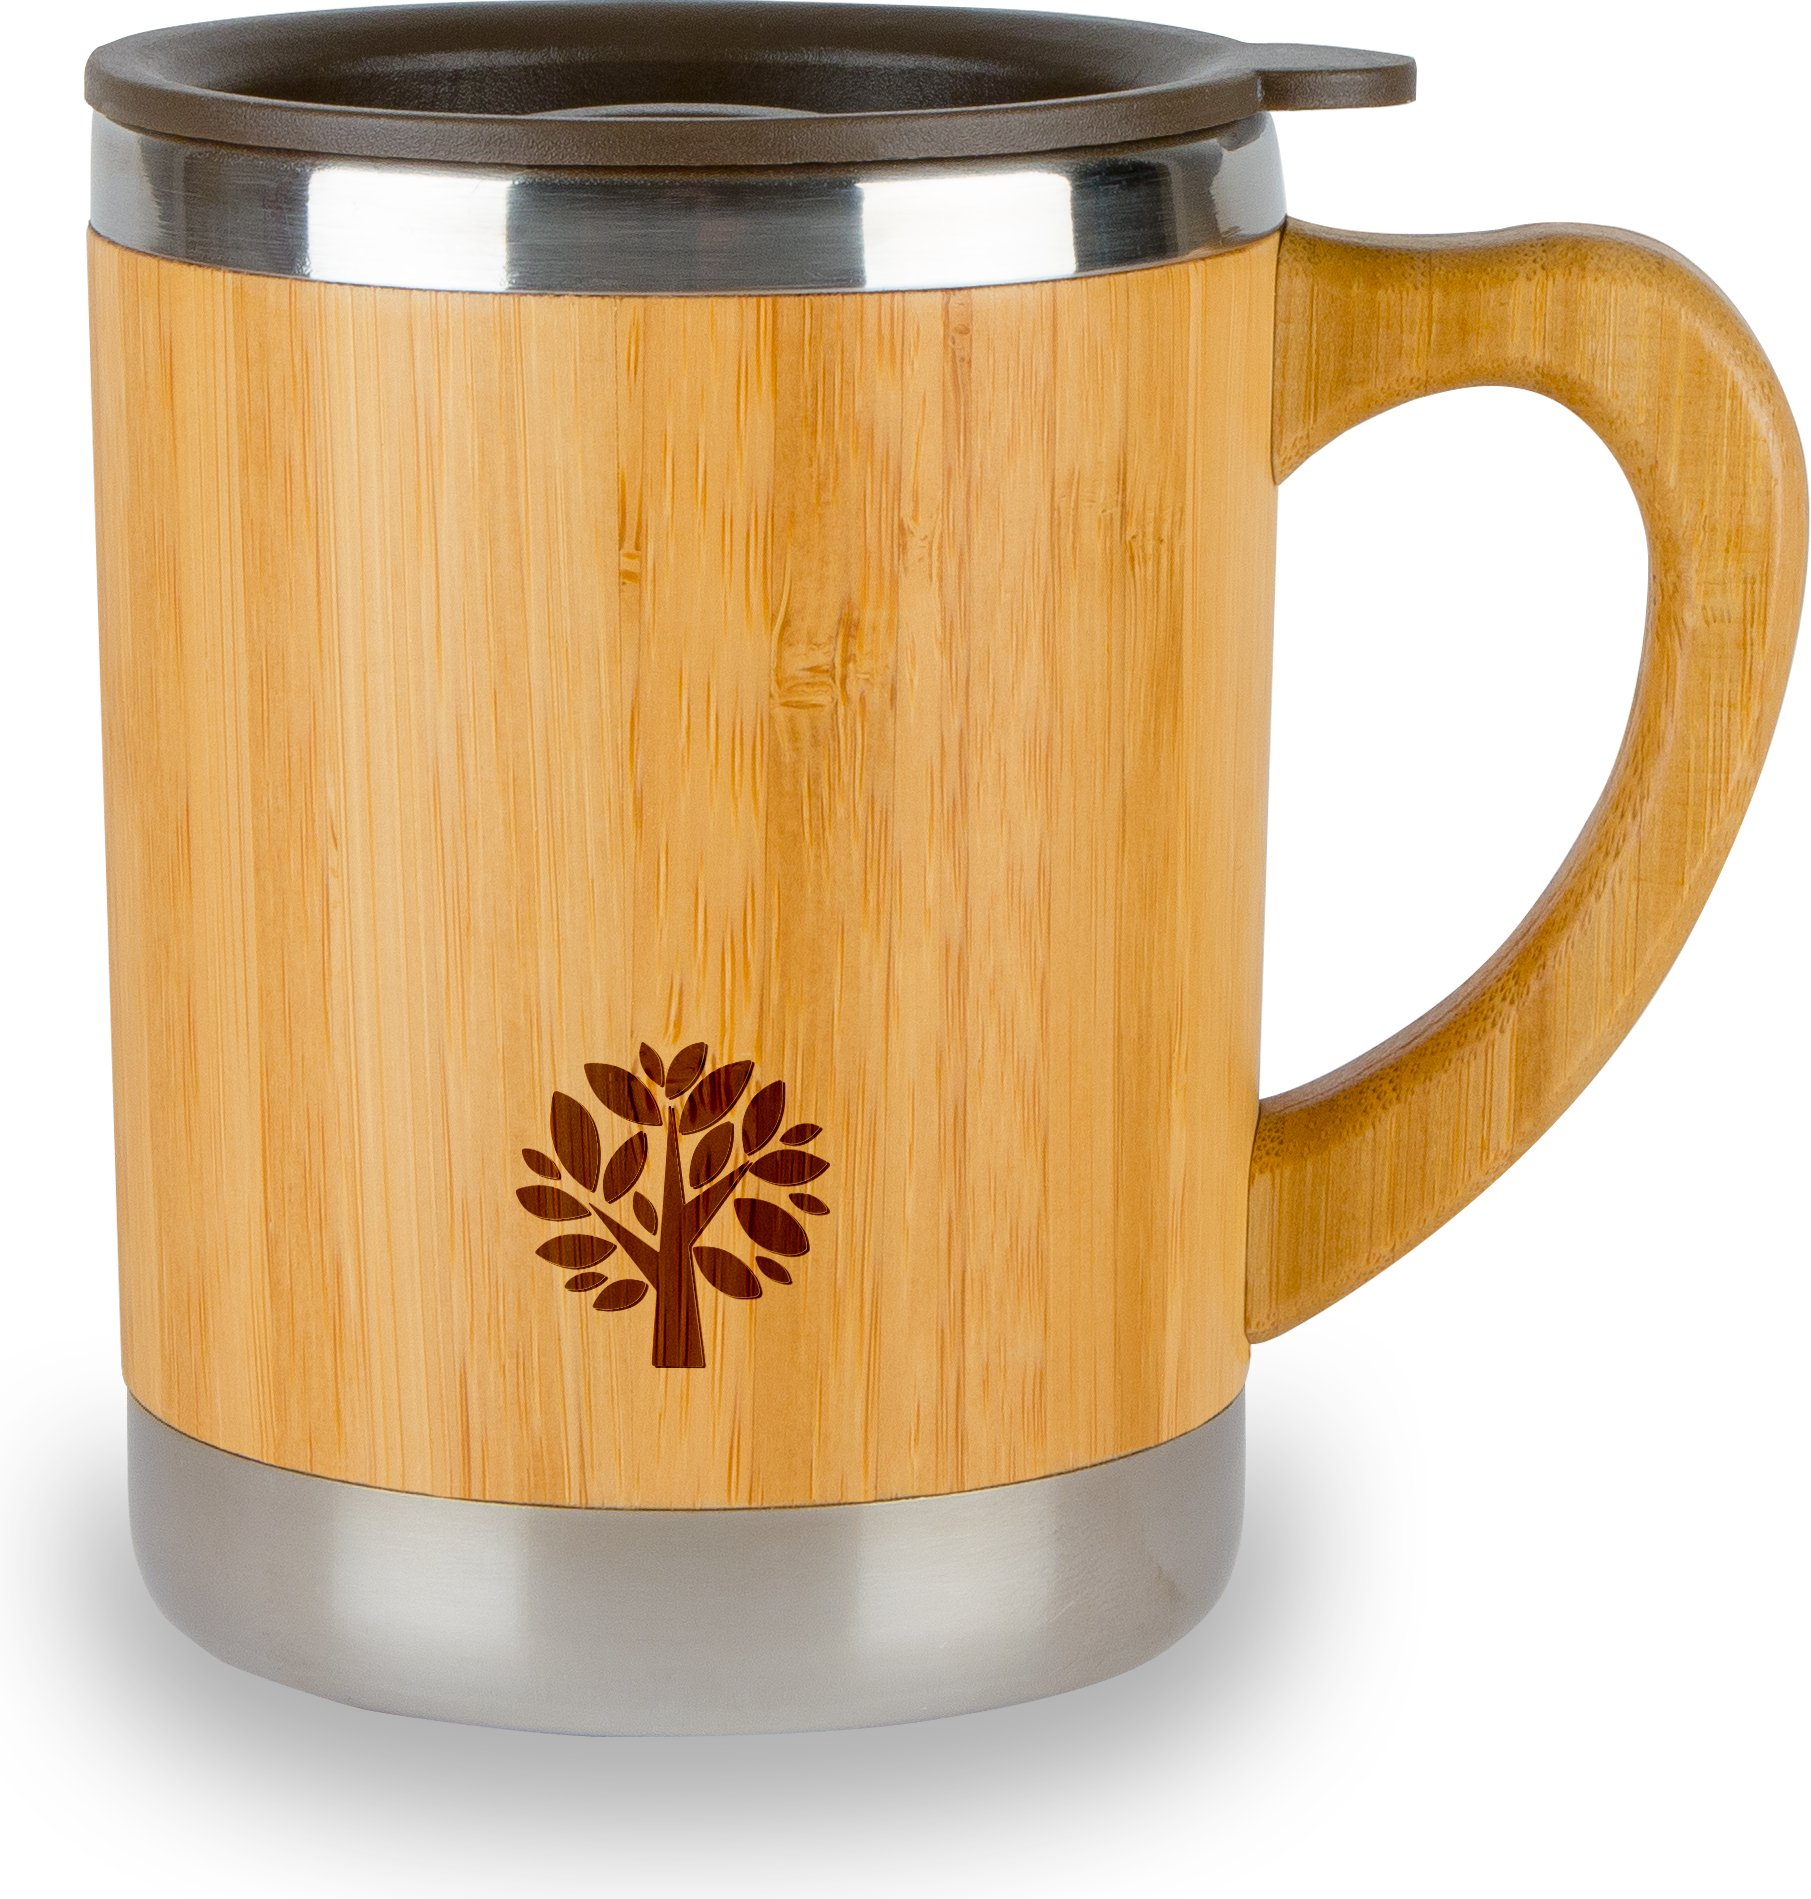 Stainless Steel & Bamboo Coffee Mug - Insulated Wooden Cup with Handle & Lid - Non-Spill On the Go - Keep Your Tea Hot Longer - Unique Gift for Men & Women - 11 oz / 300 ml